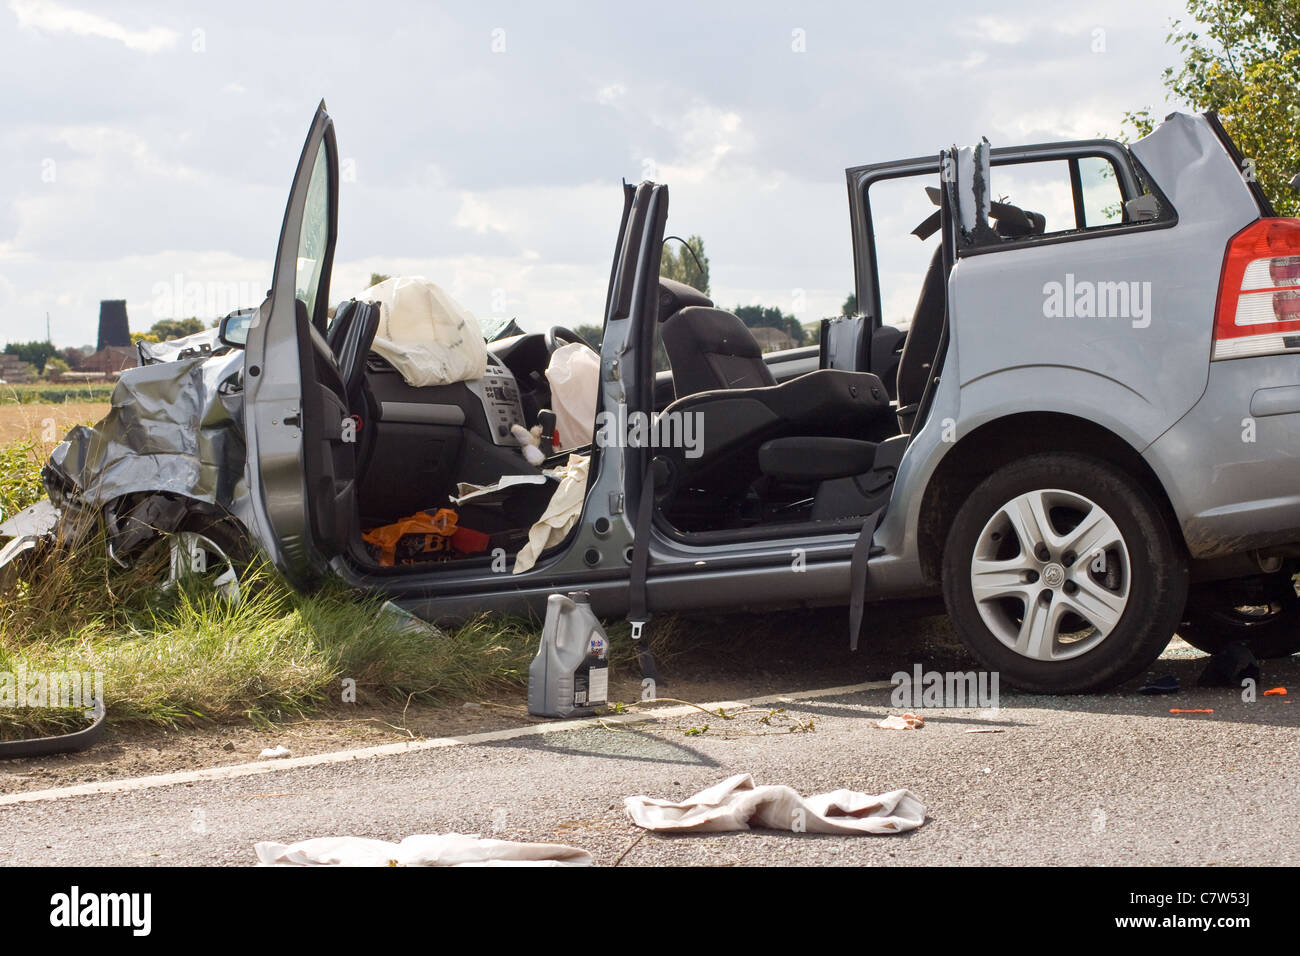 RTC,Road,Traffic,Collision,Wreckage,Graphic,Airbag, - Stock Image